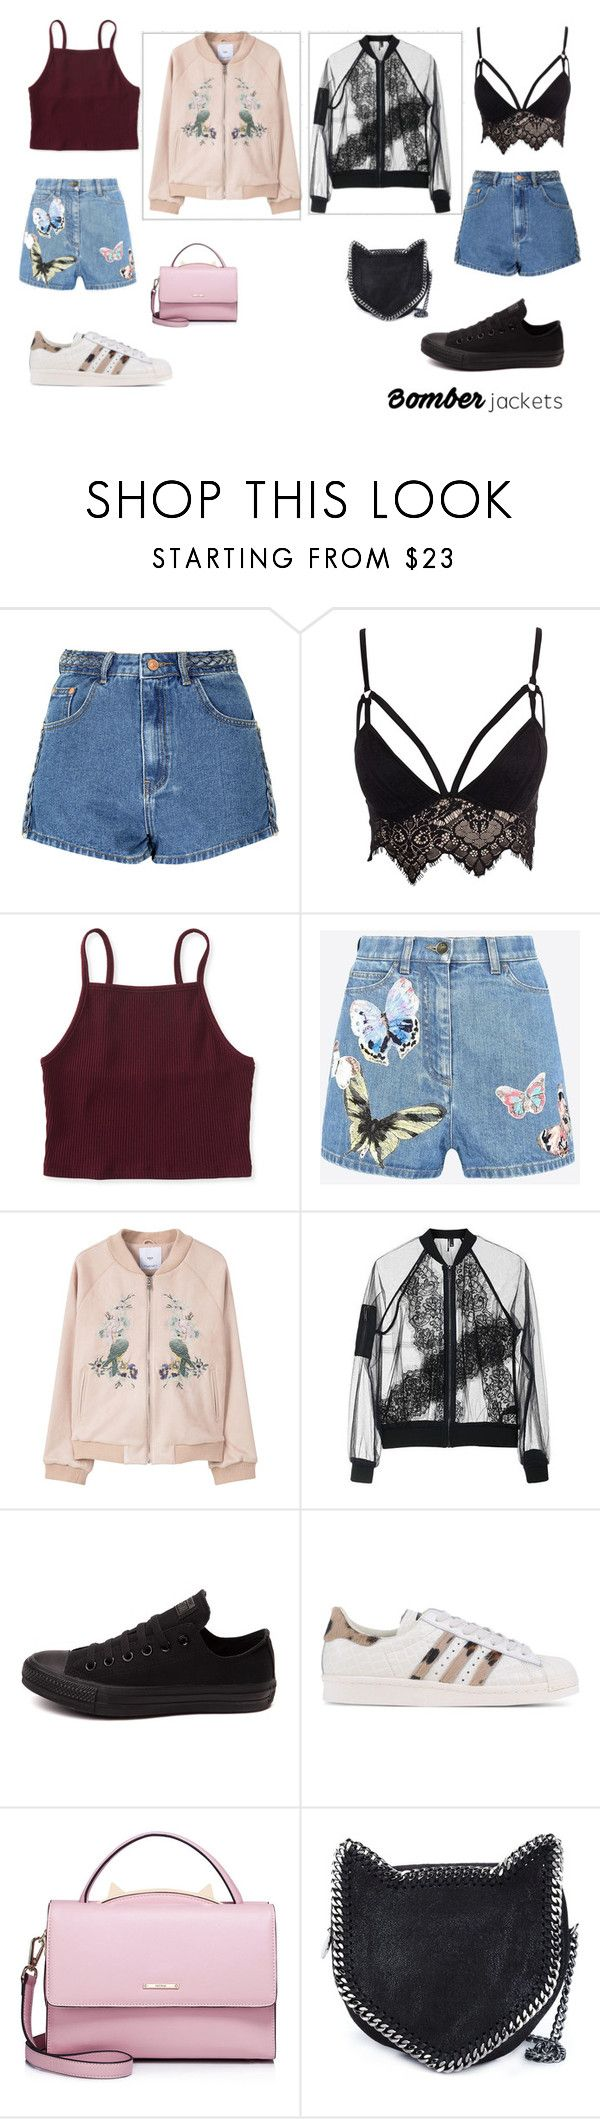 """""""Untitled #309"""" by epa1412 ❤ liked on Polyvore featuring Glamorous, Club L, Aéropostale, Valentino, MANGO, Topshop, Converse, adidas Originals, WithChic and STELLA McCARTNEY"""